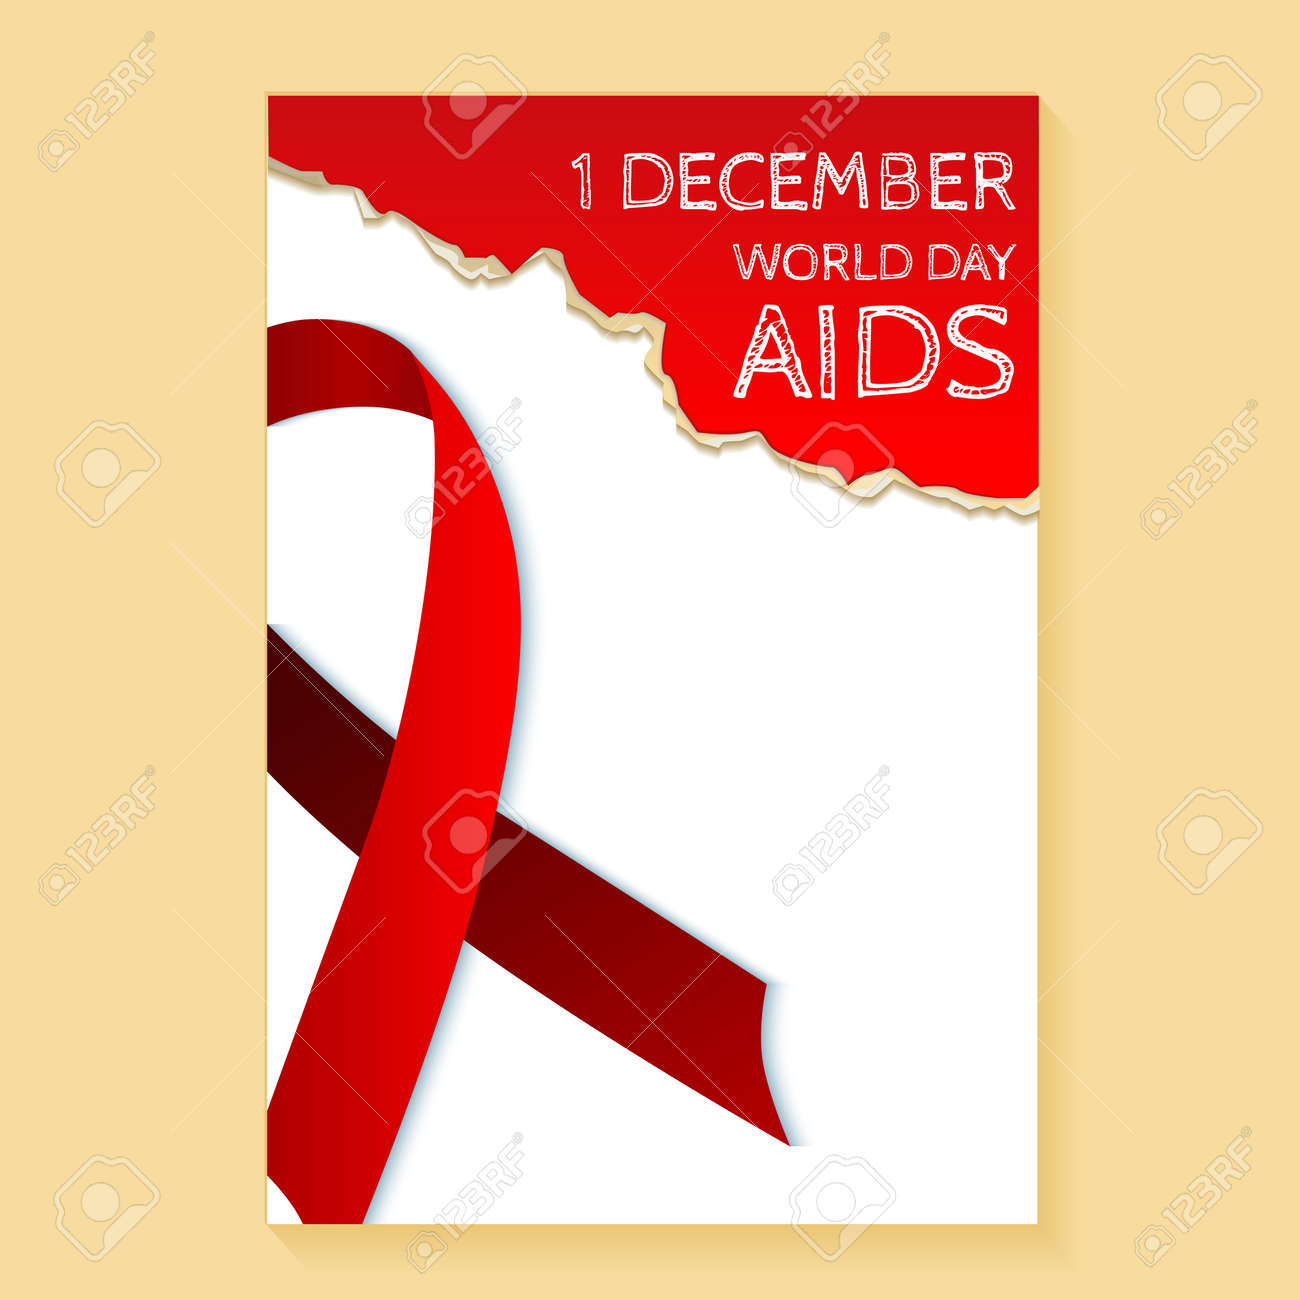 Red Ribbon Symbol Of The Fight Against Aids The Concept Of Charity